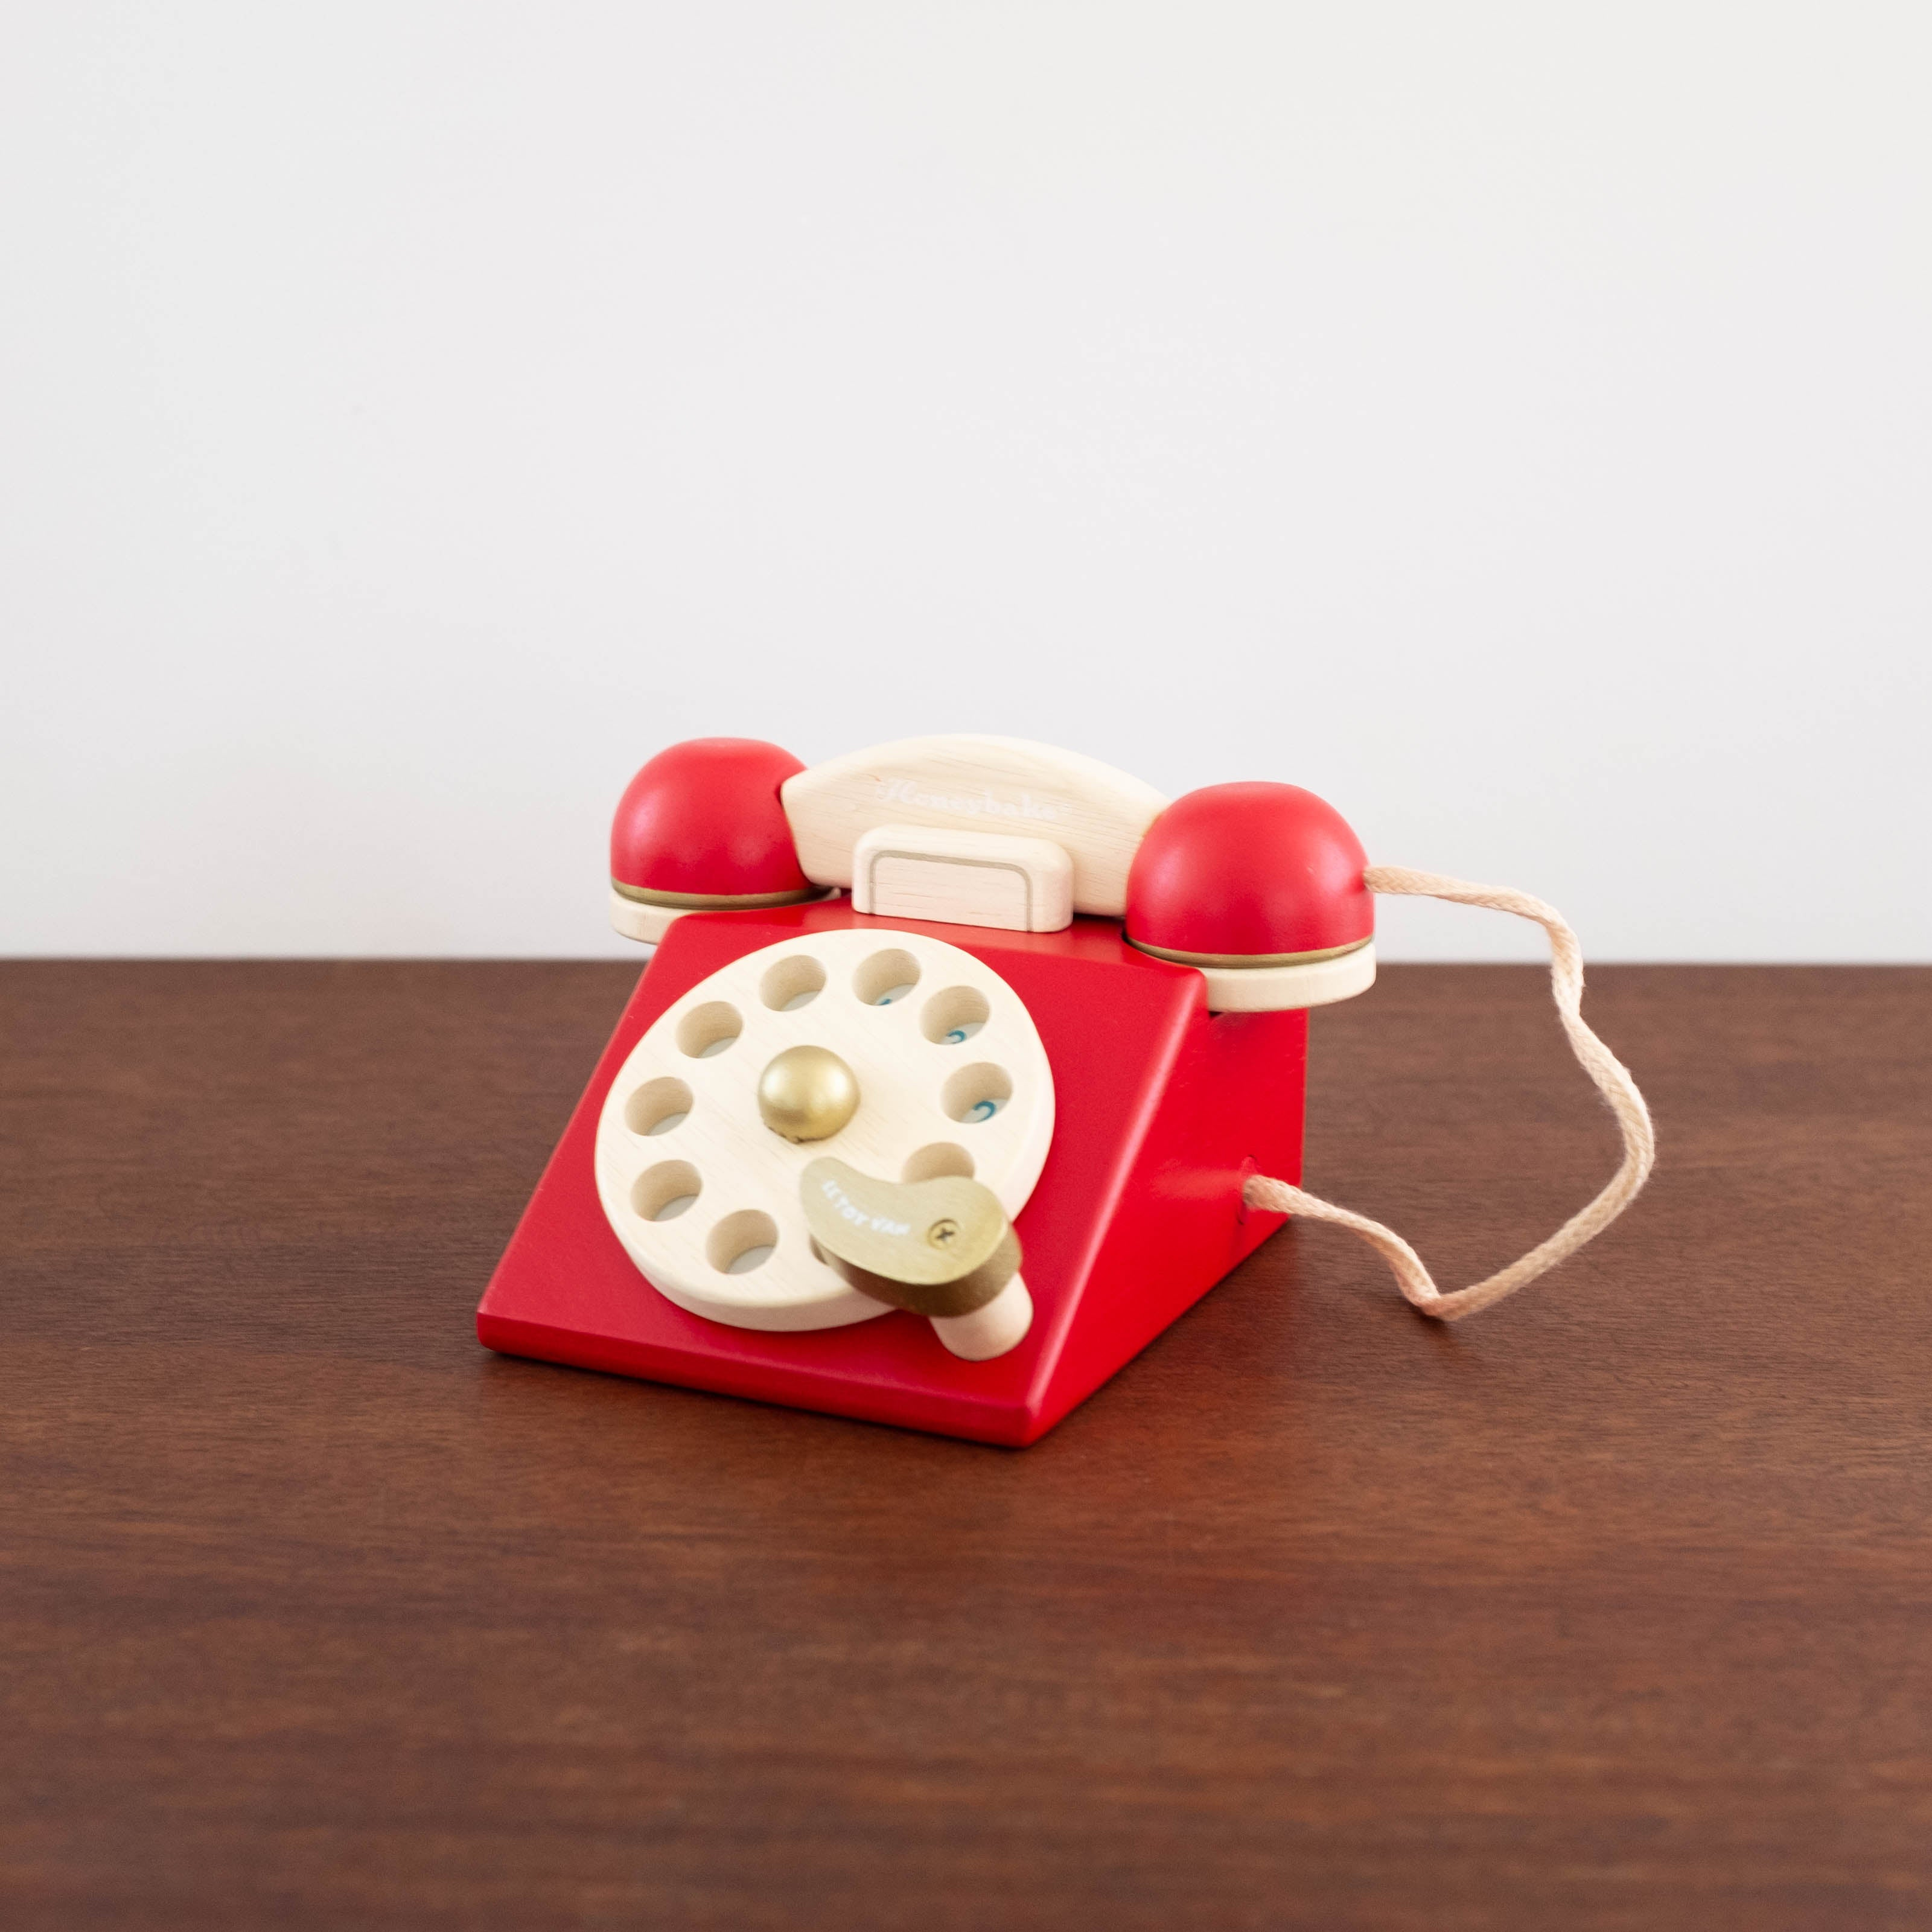 Wooden Vintage Telephone Toy